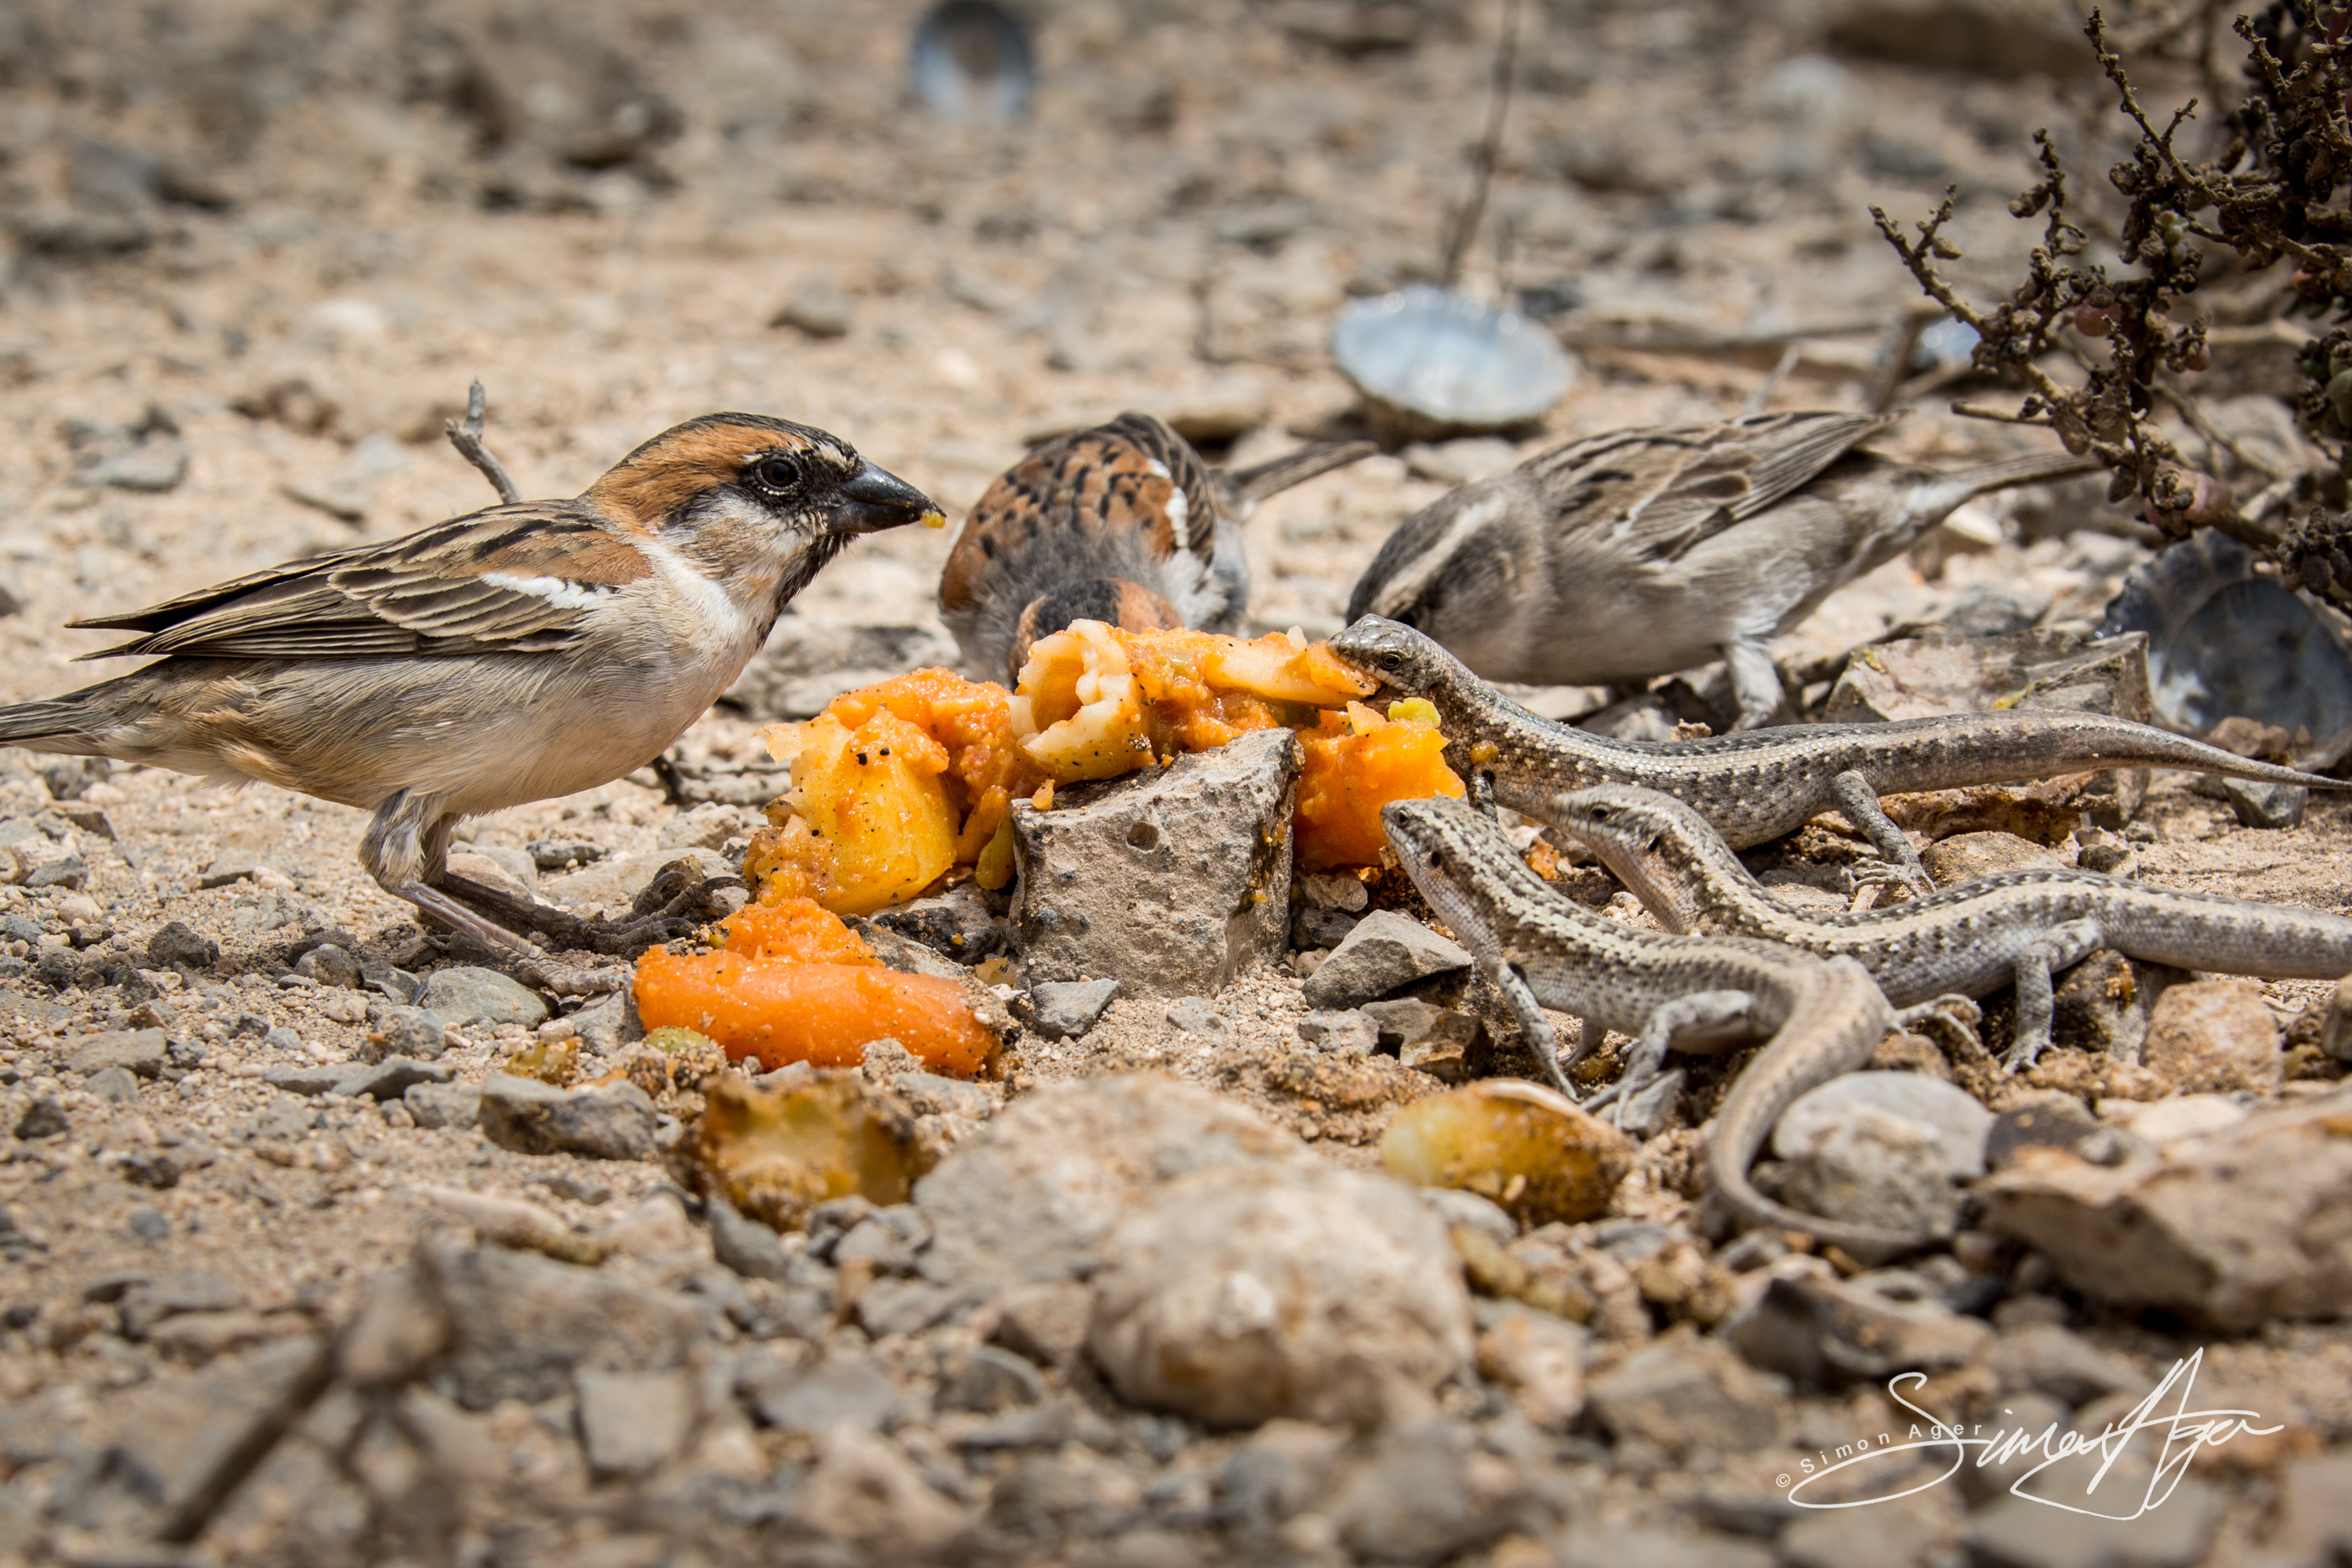 140814-SA-001-Sparrows-and-Lizards-consume-leftovers -1151